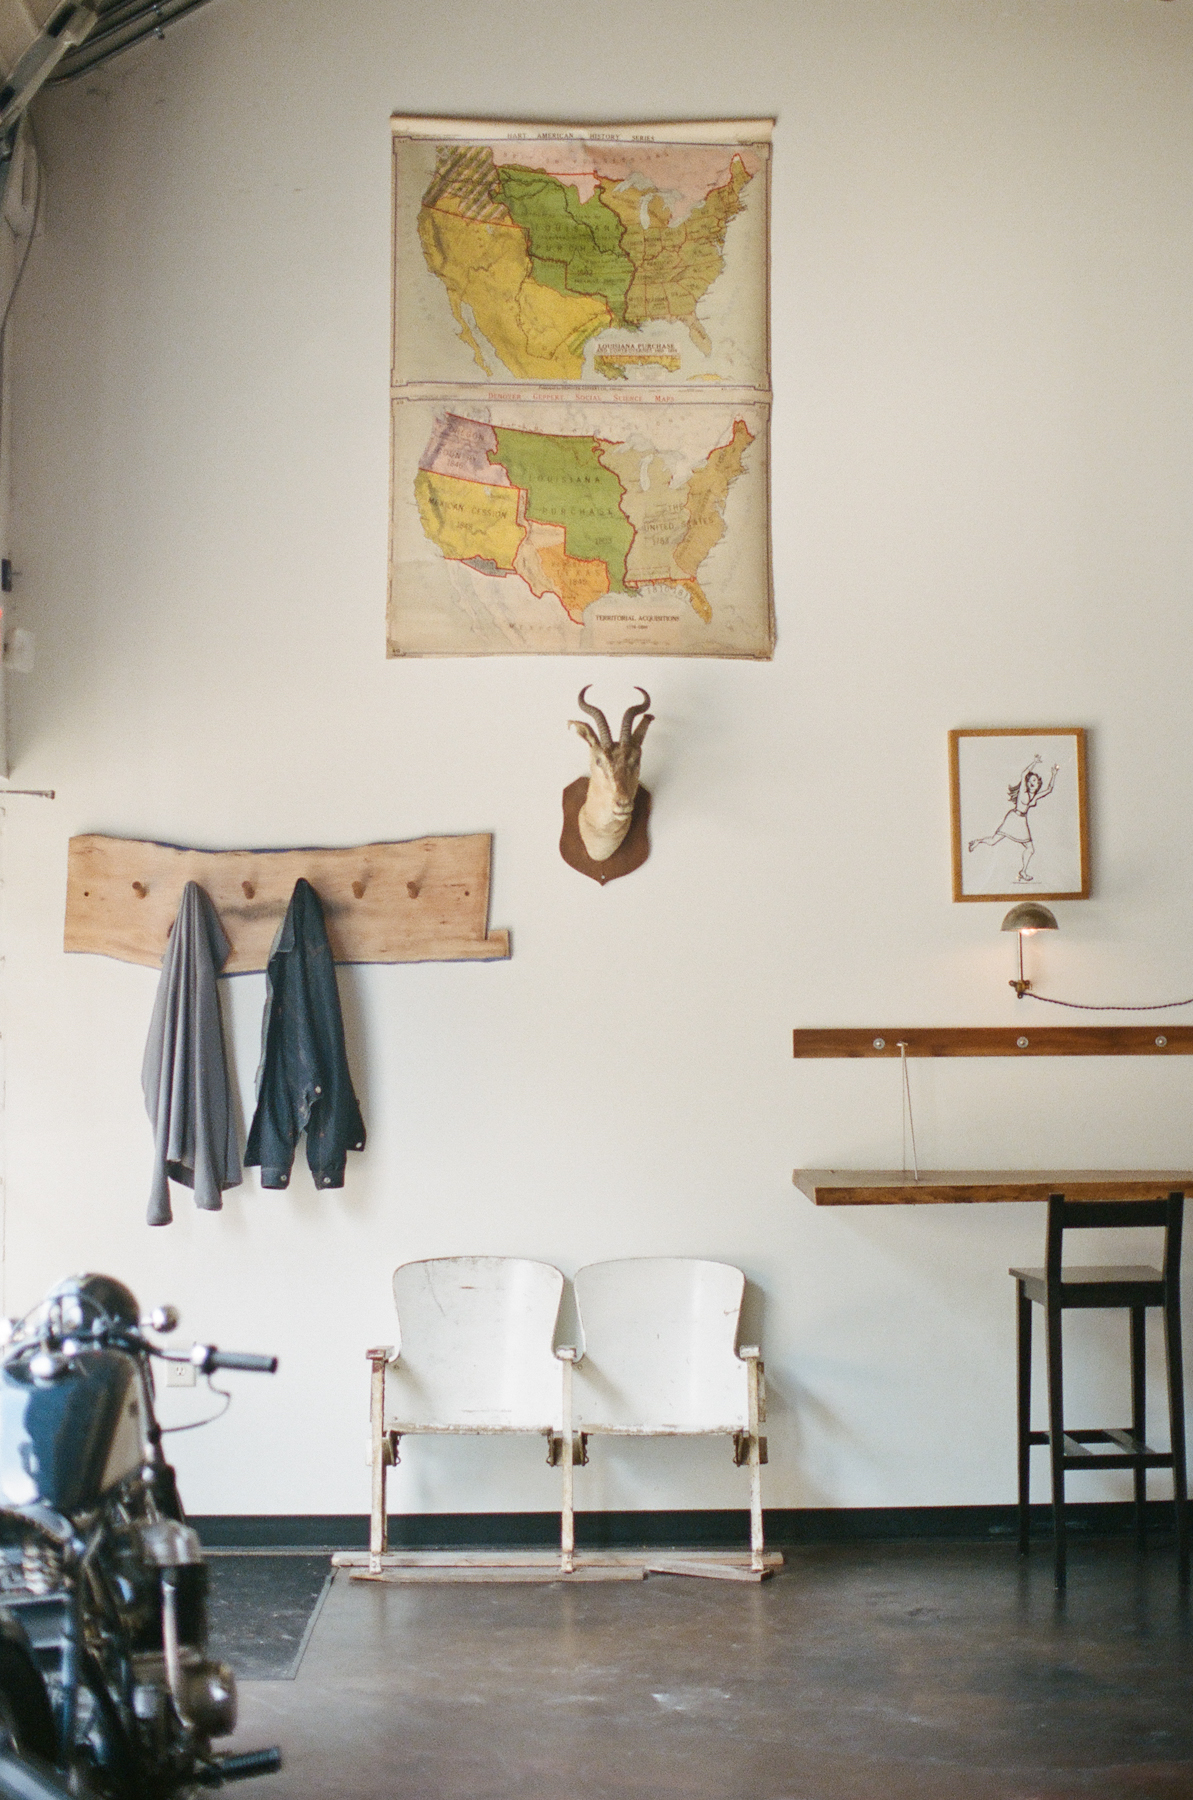 Barista Parlor Nashville Tennessee restaurant coffeehouse | lily glass